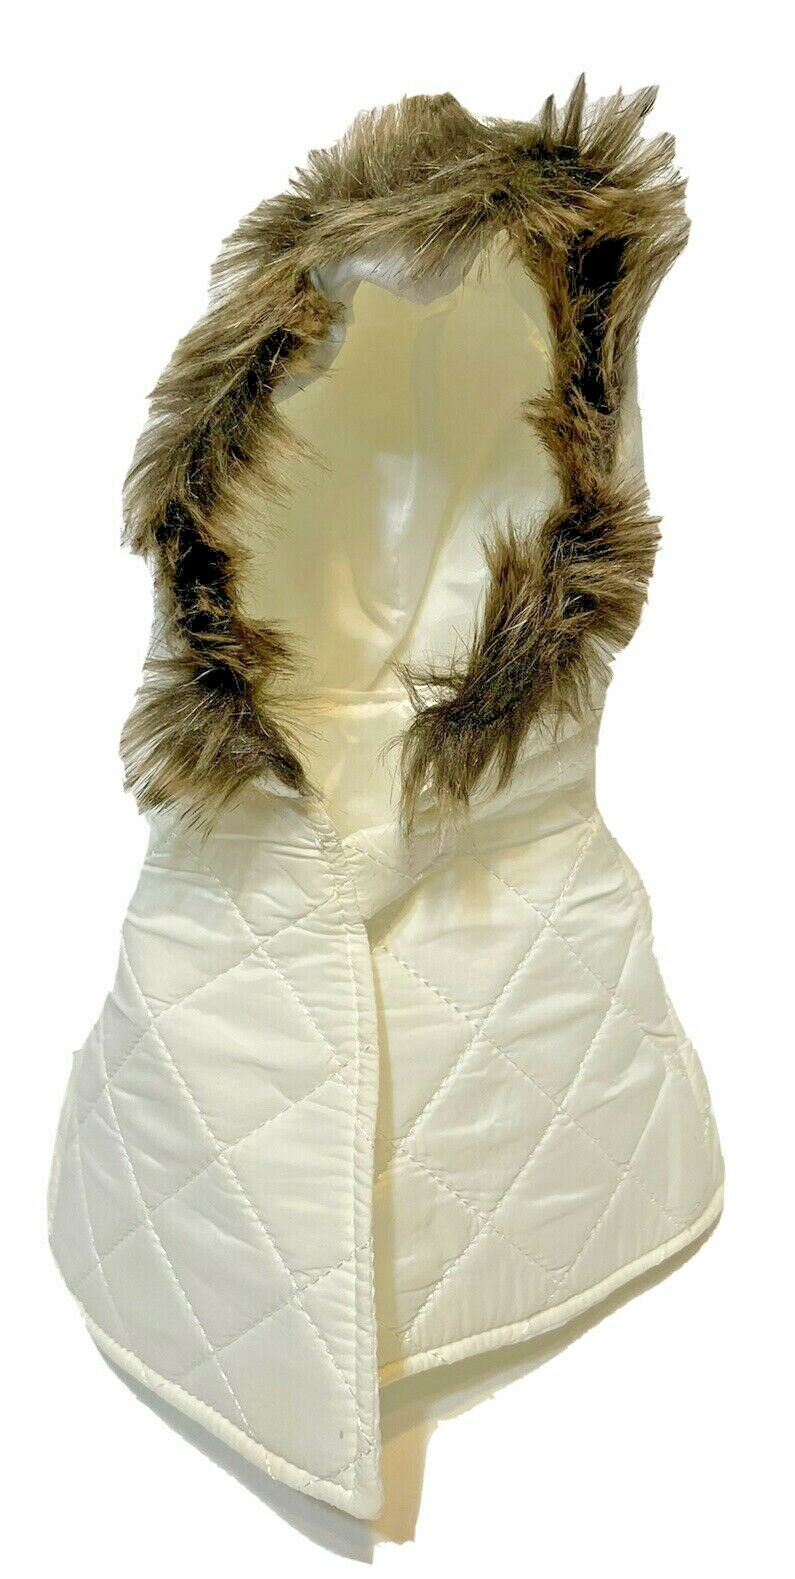 Scentsy Buddies Accessories Winter Jacket Vest Cream with Fur Lined Hood - $12.60